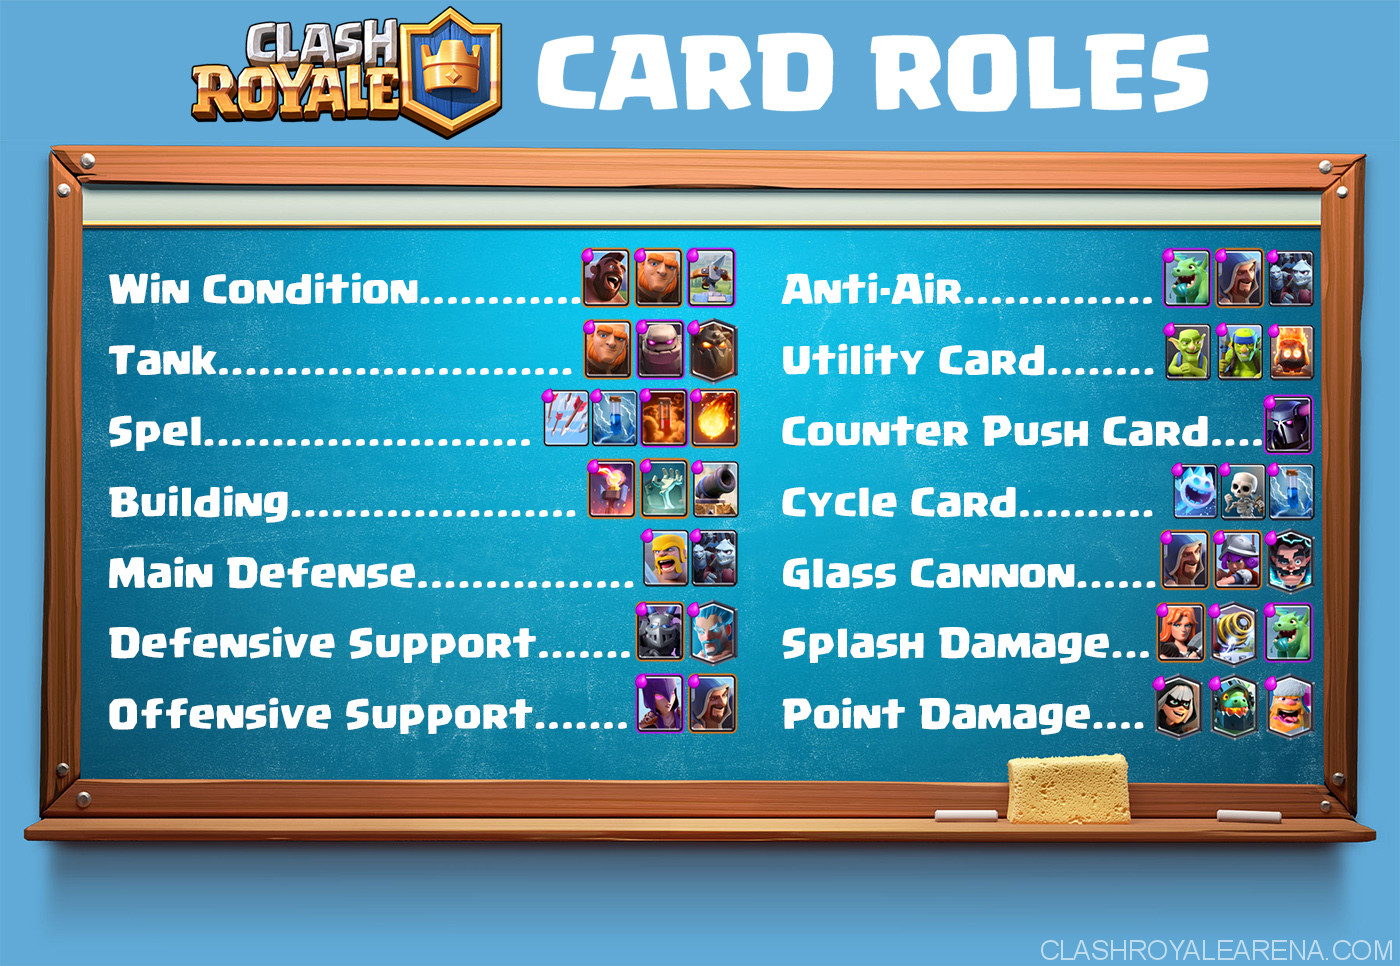 Best clash royale decks from arena 1 to arena 11 april for Clash royale deck molosse